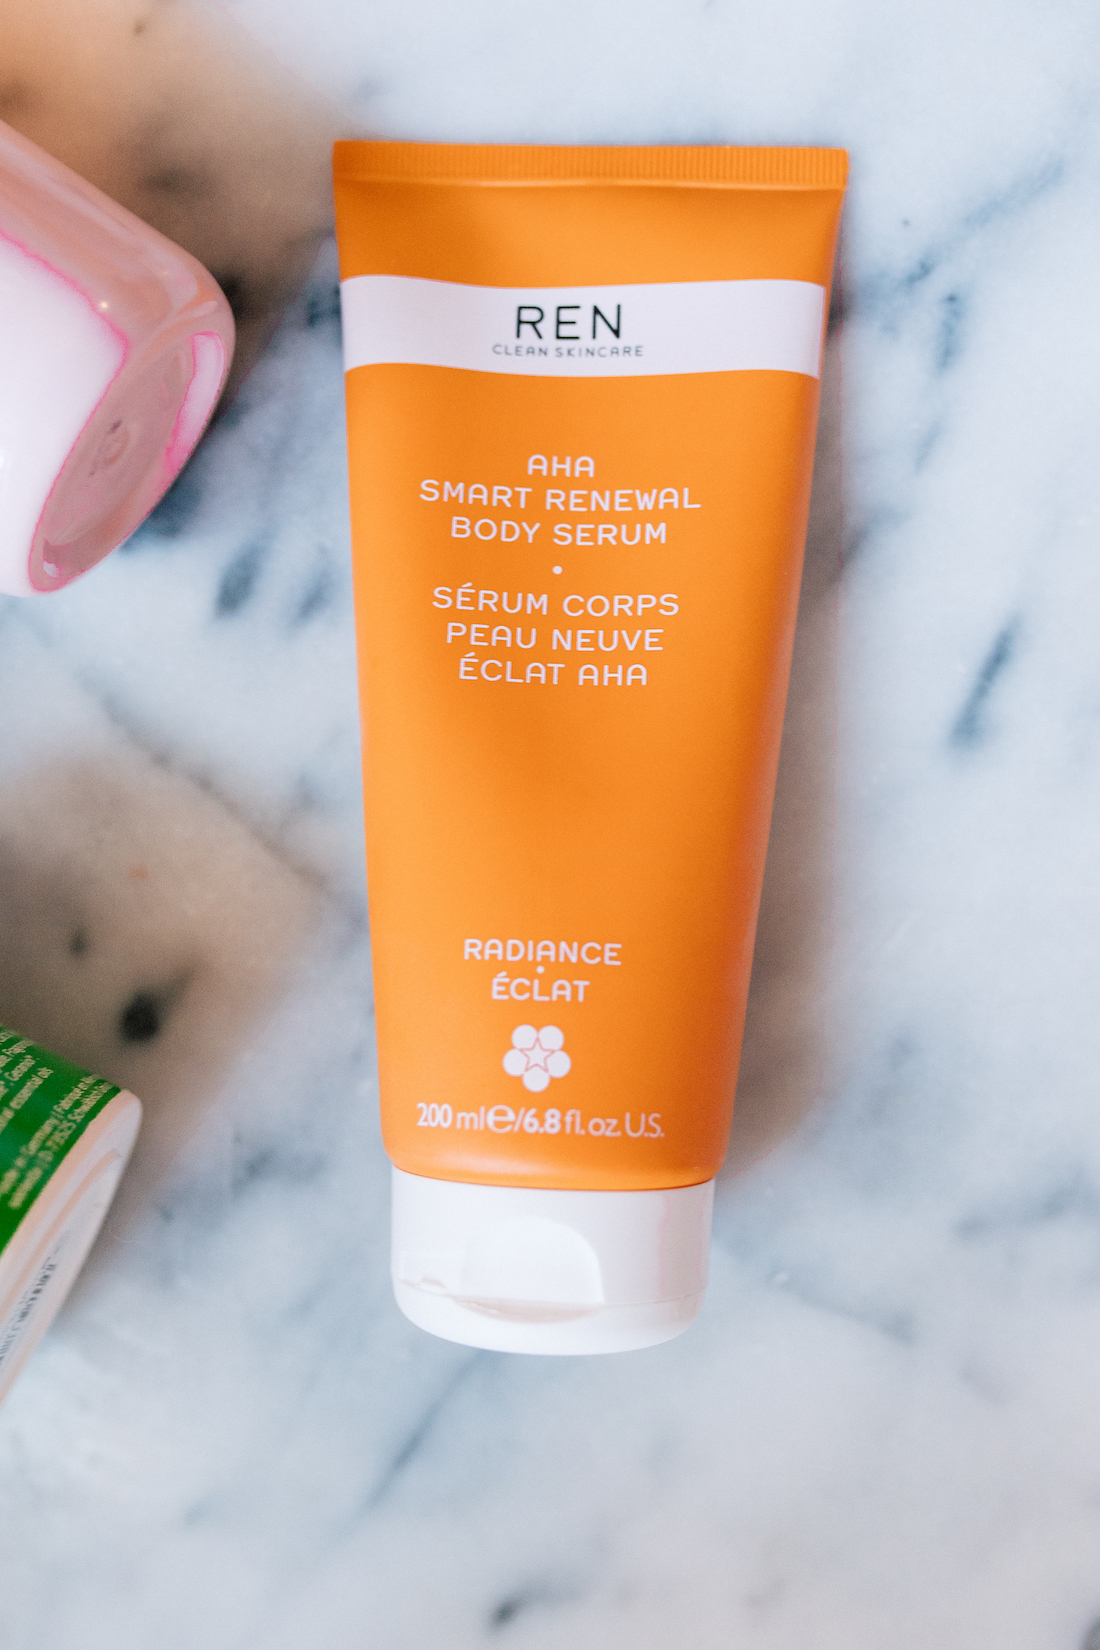 my favorite body products for dry skin | ren body serum | #beauty #skincare #beautyblogger #glossier | thestripe.com